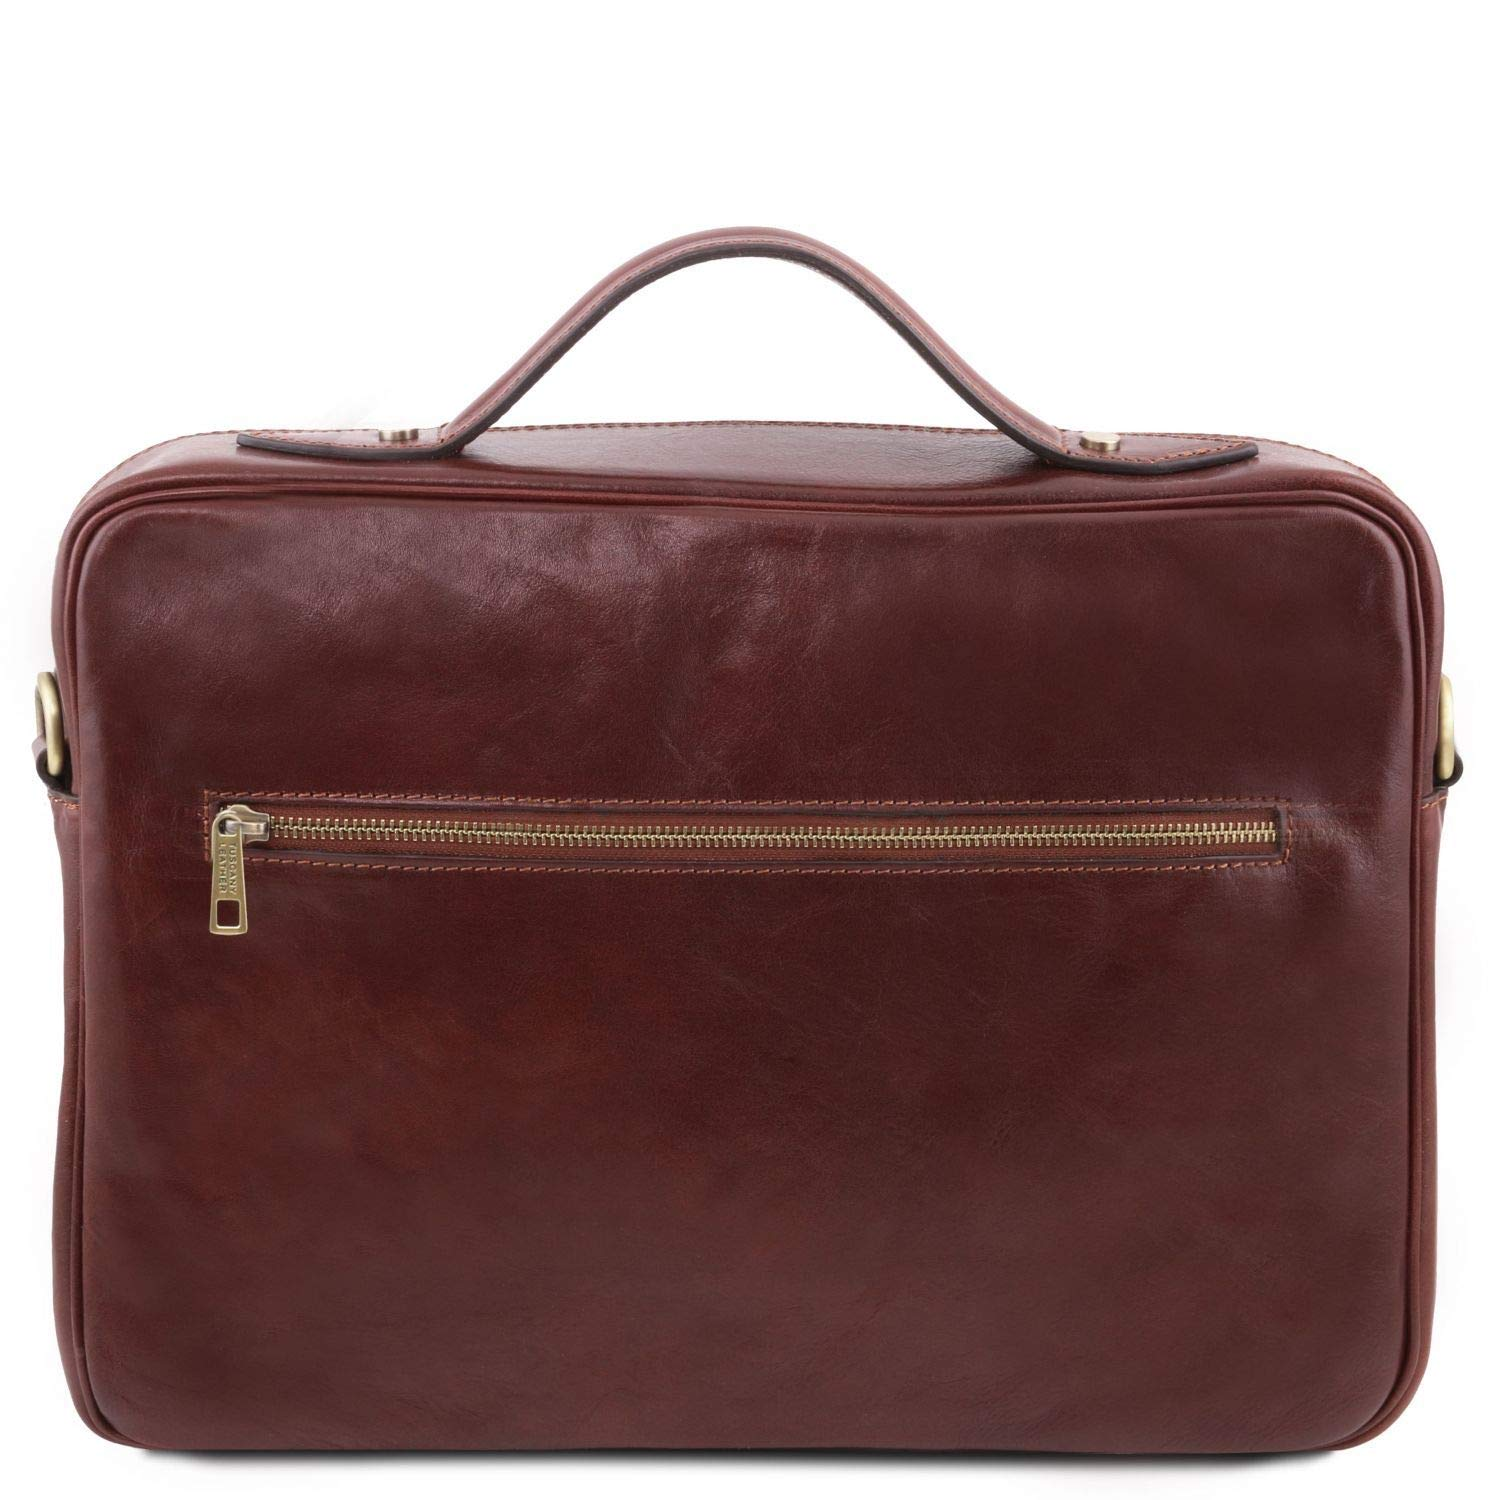 Leather laptop briefcase with zip closure Vicenza TL141240 Tuscany Leather